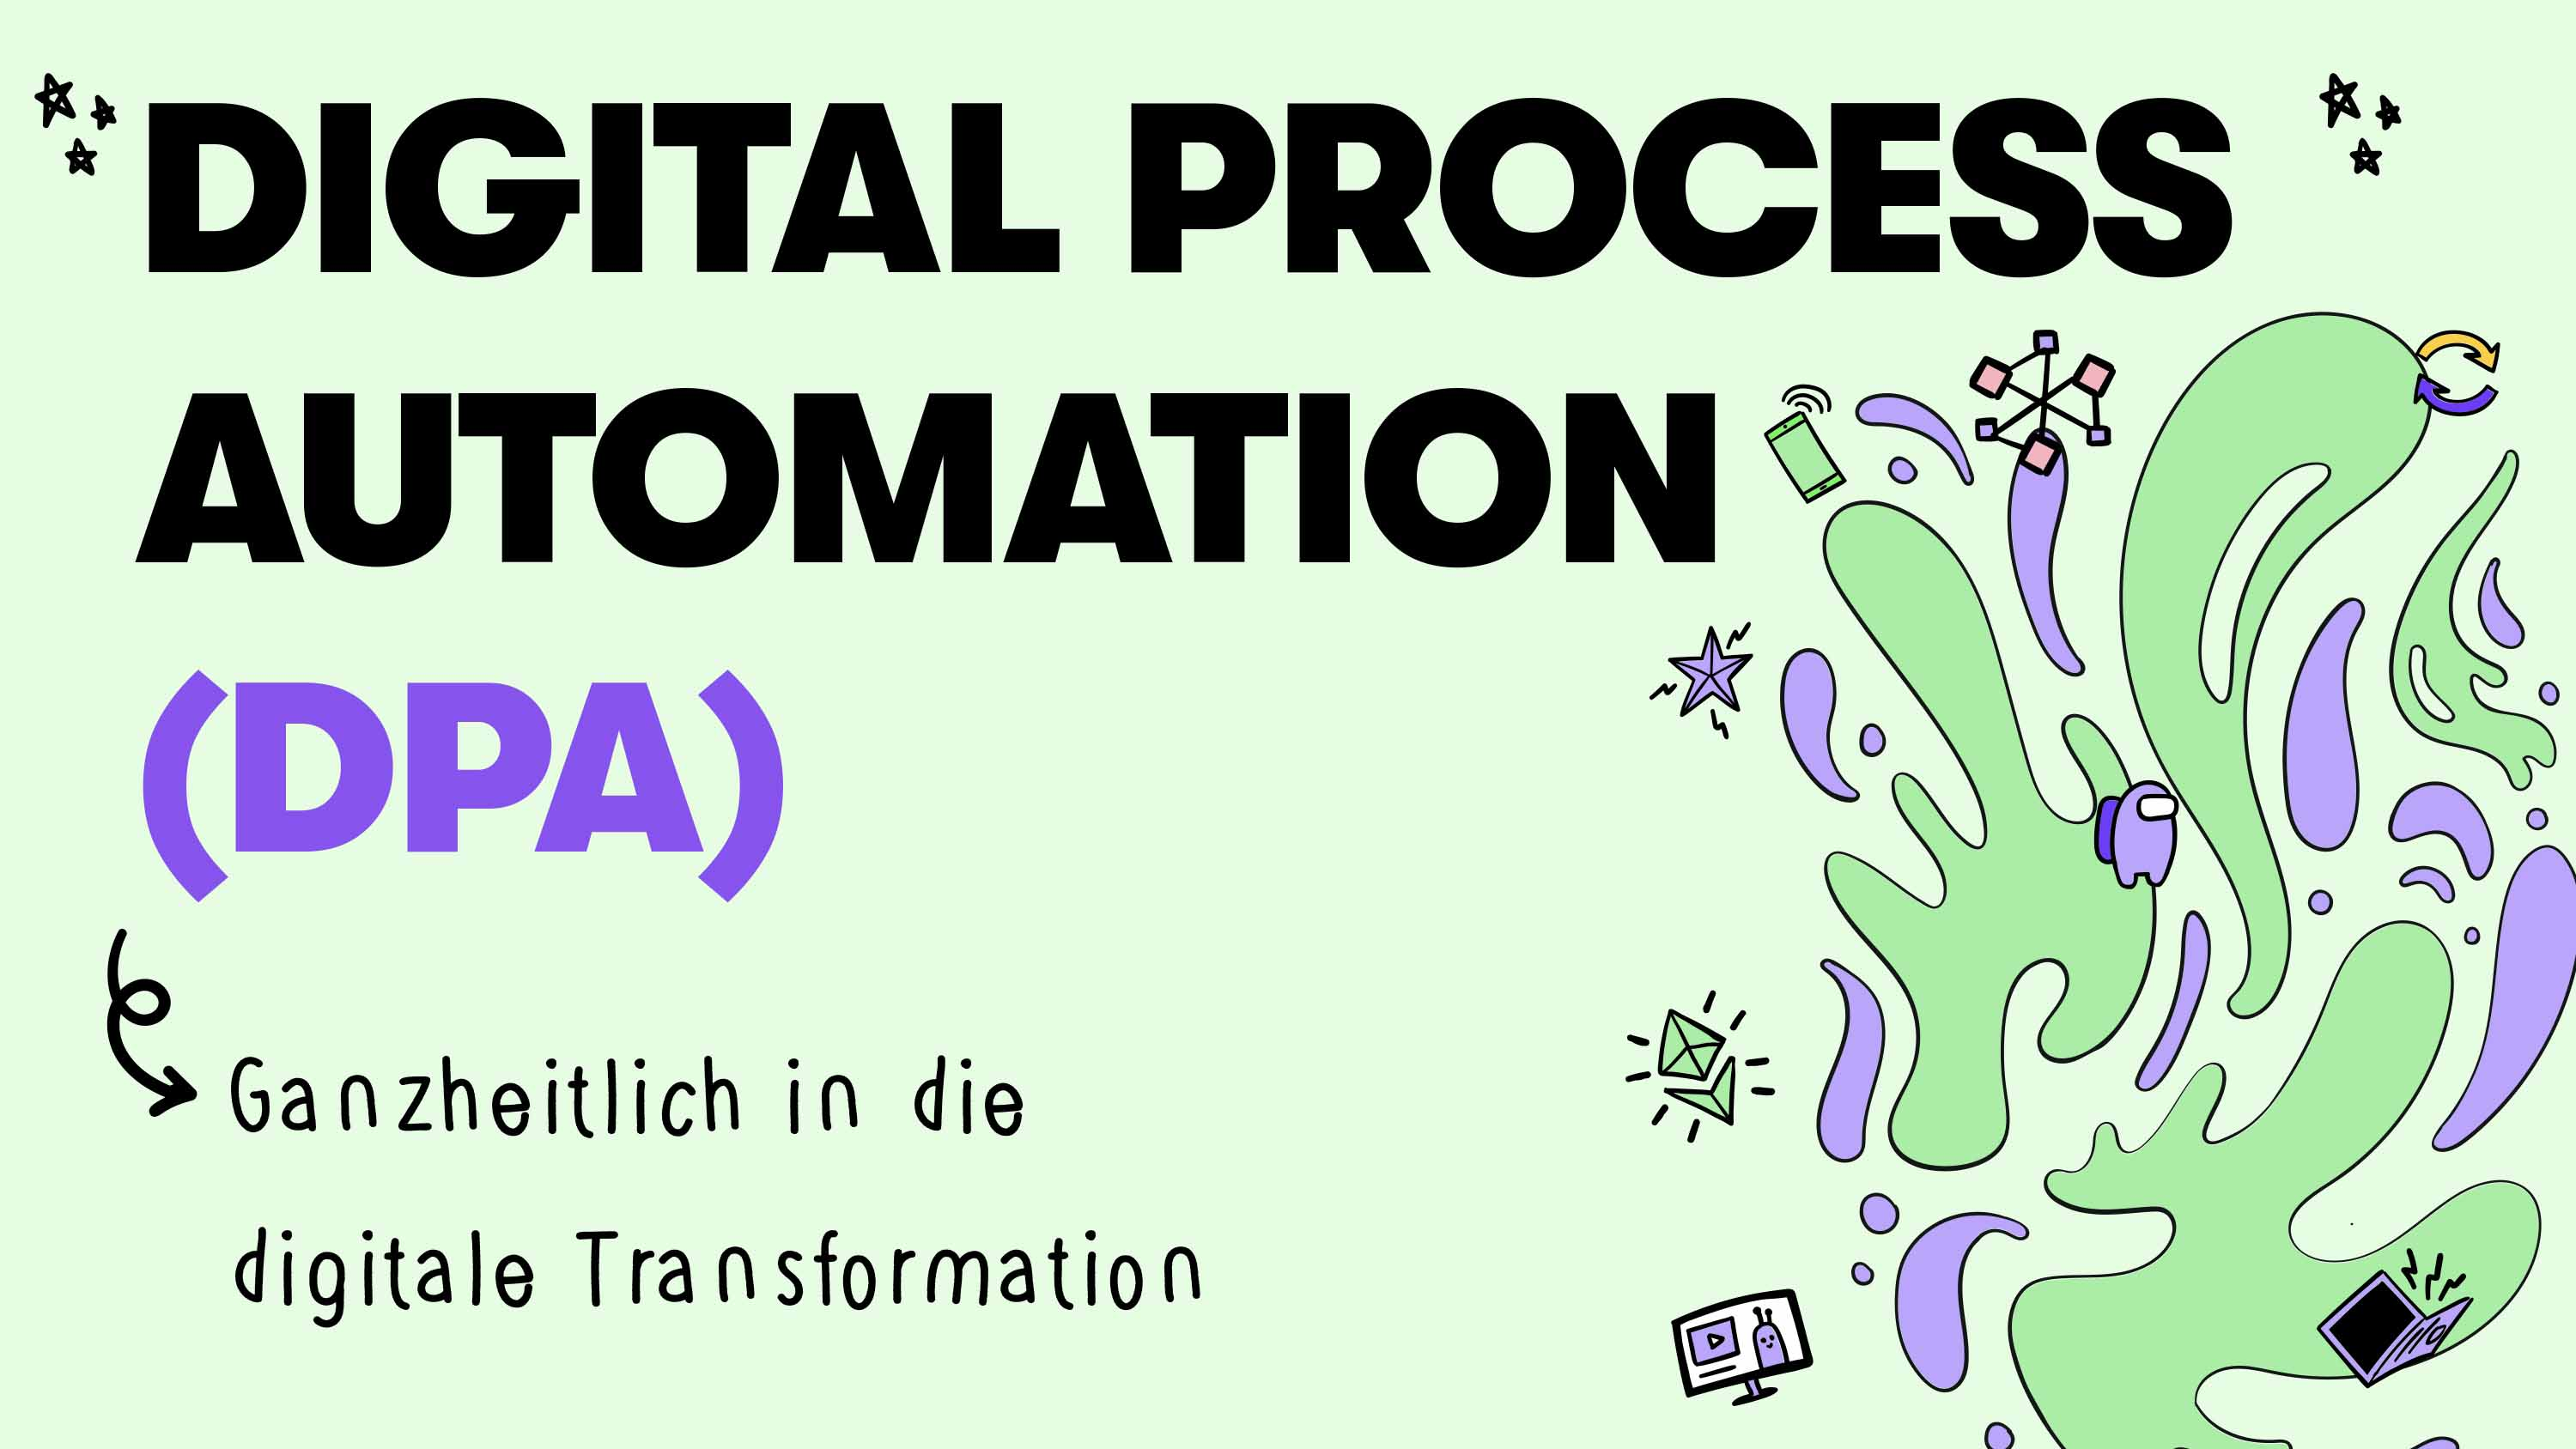 Digital Process Automation (DPA) » Definition & Anwendung «